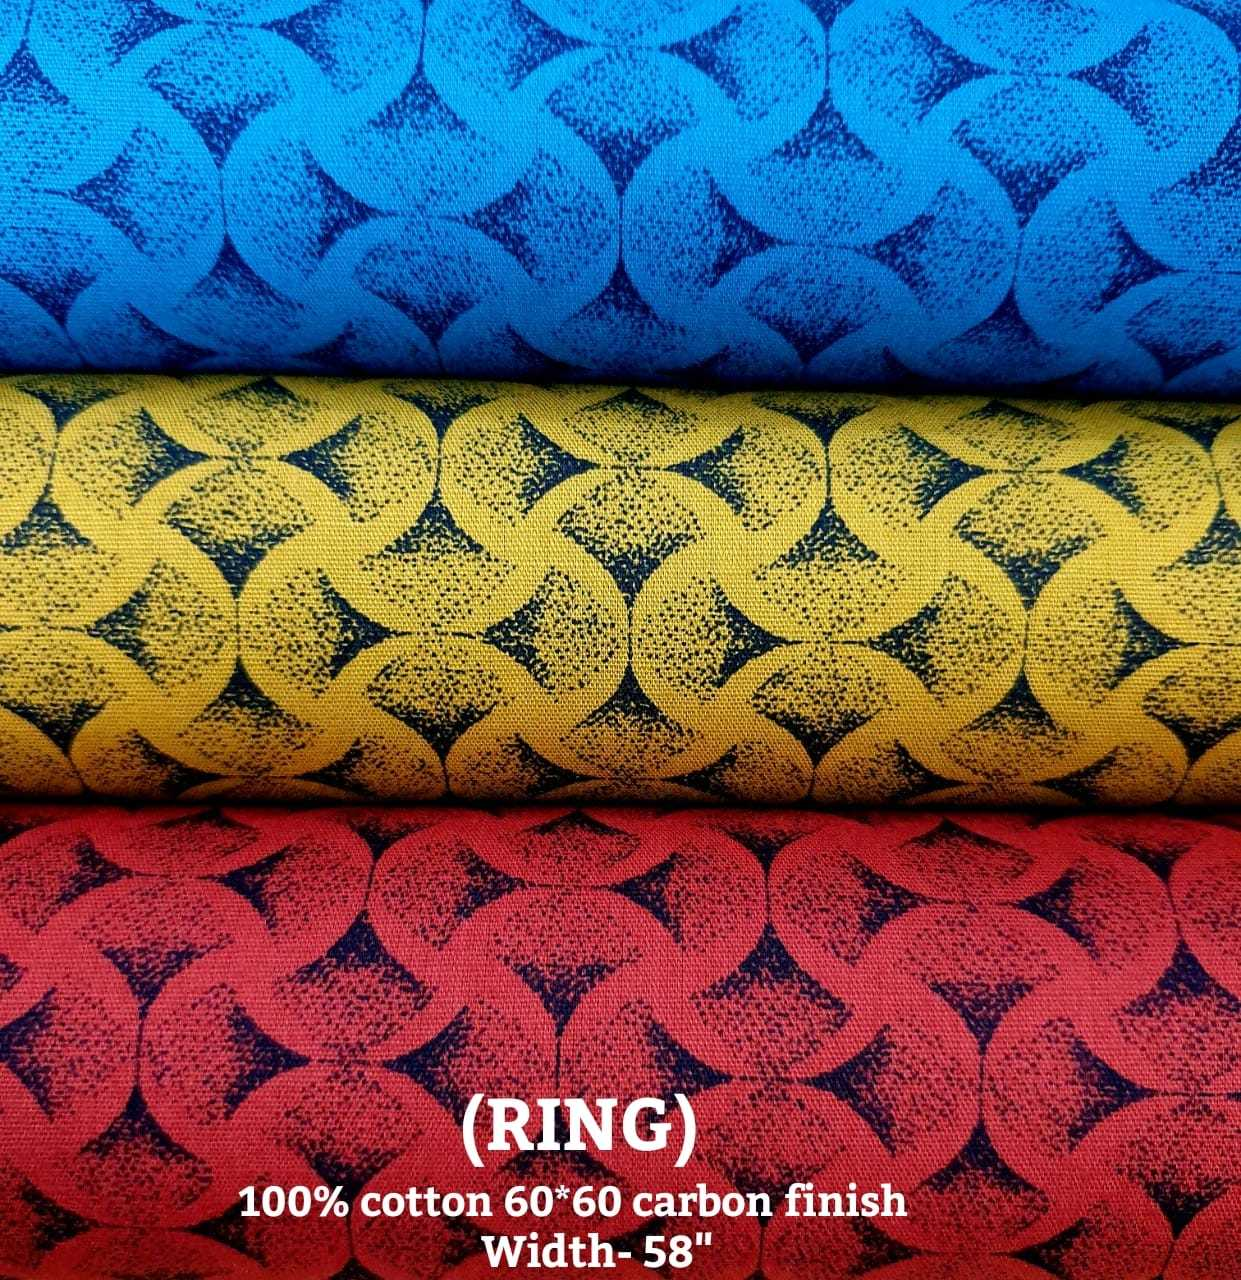 Ring 100% cotton 60*60 carbon finish